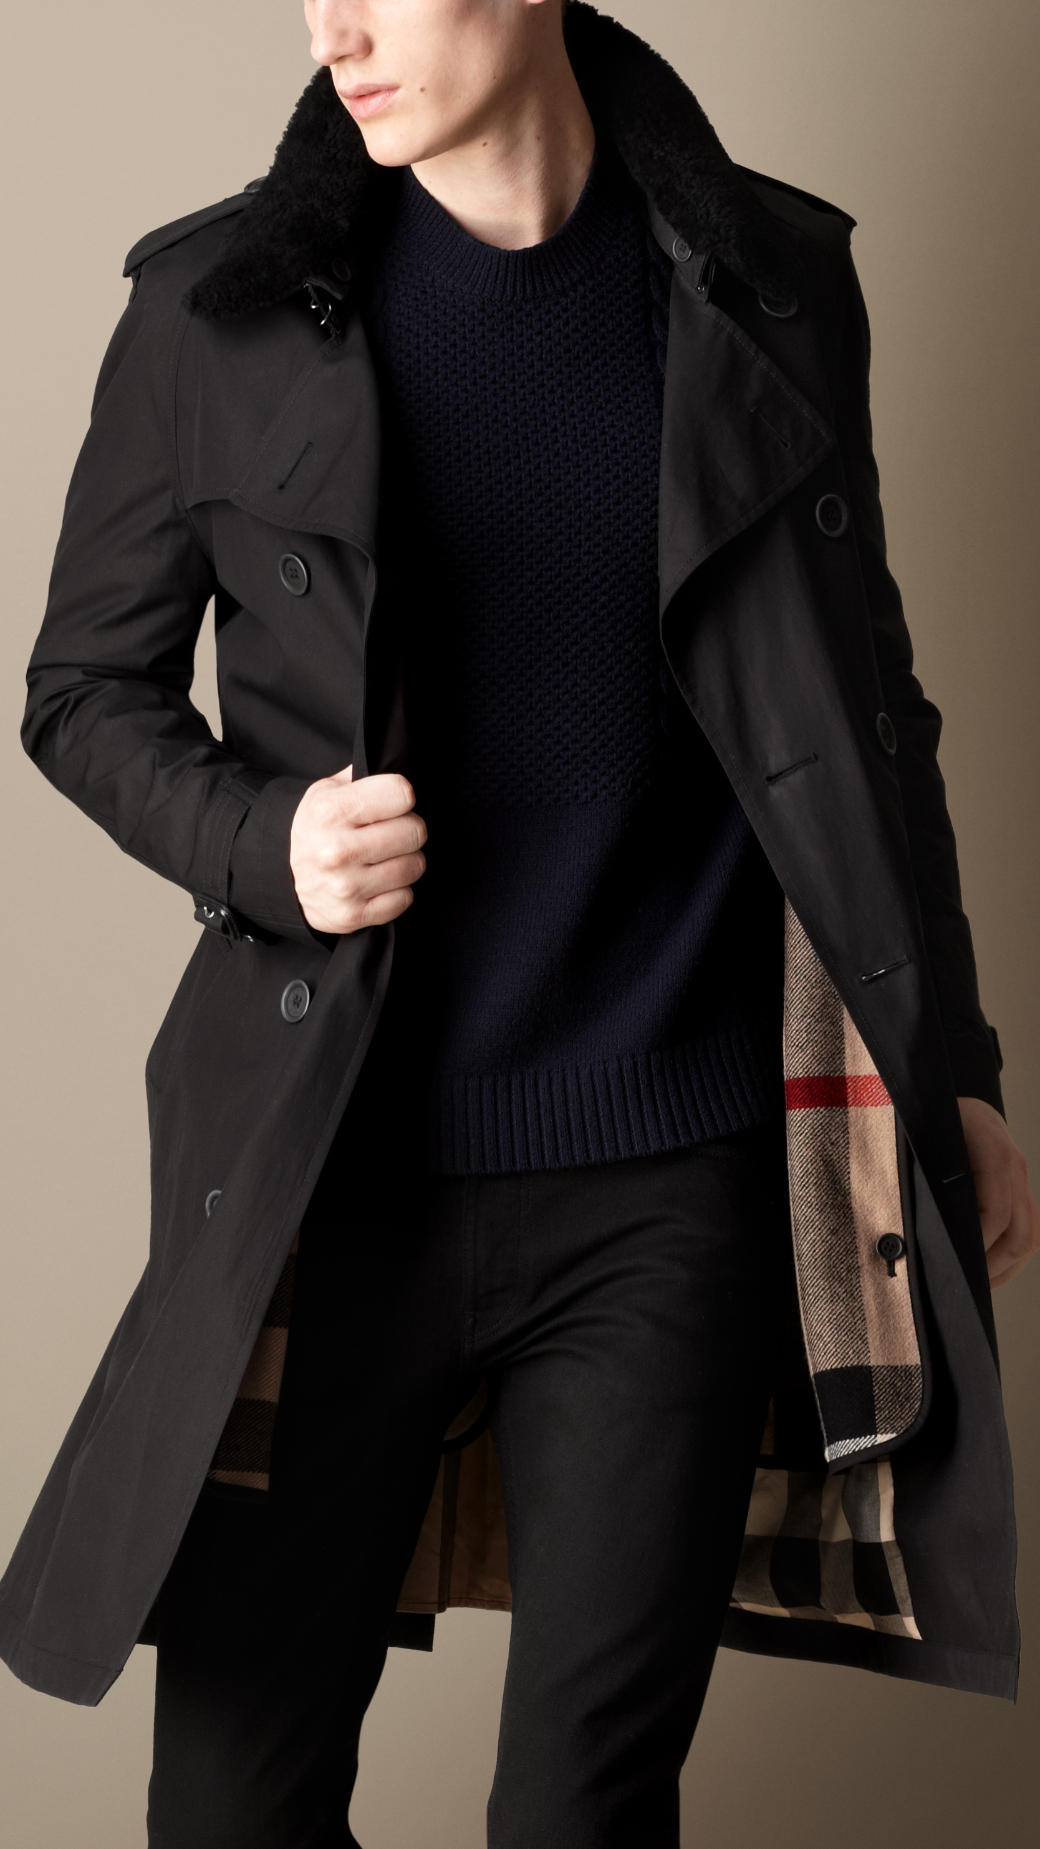 lyst burberry midlength shearling collar canvas trench coat in black for men. Black Bedroom Furniture Sets. Home Design Ideas